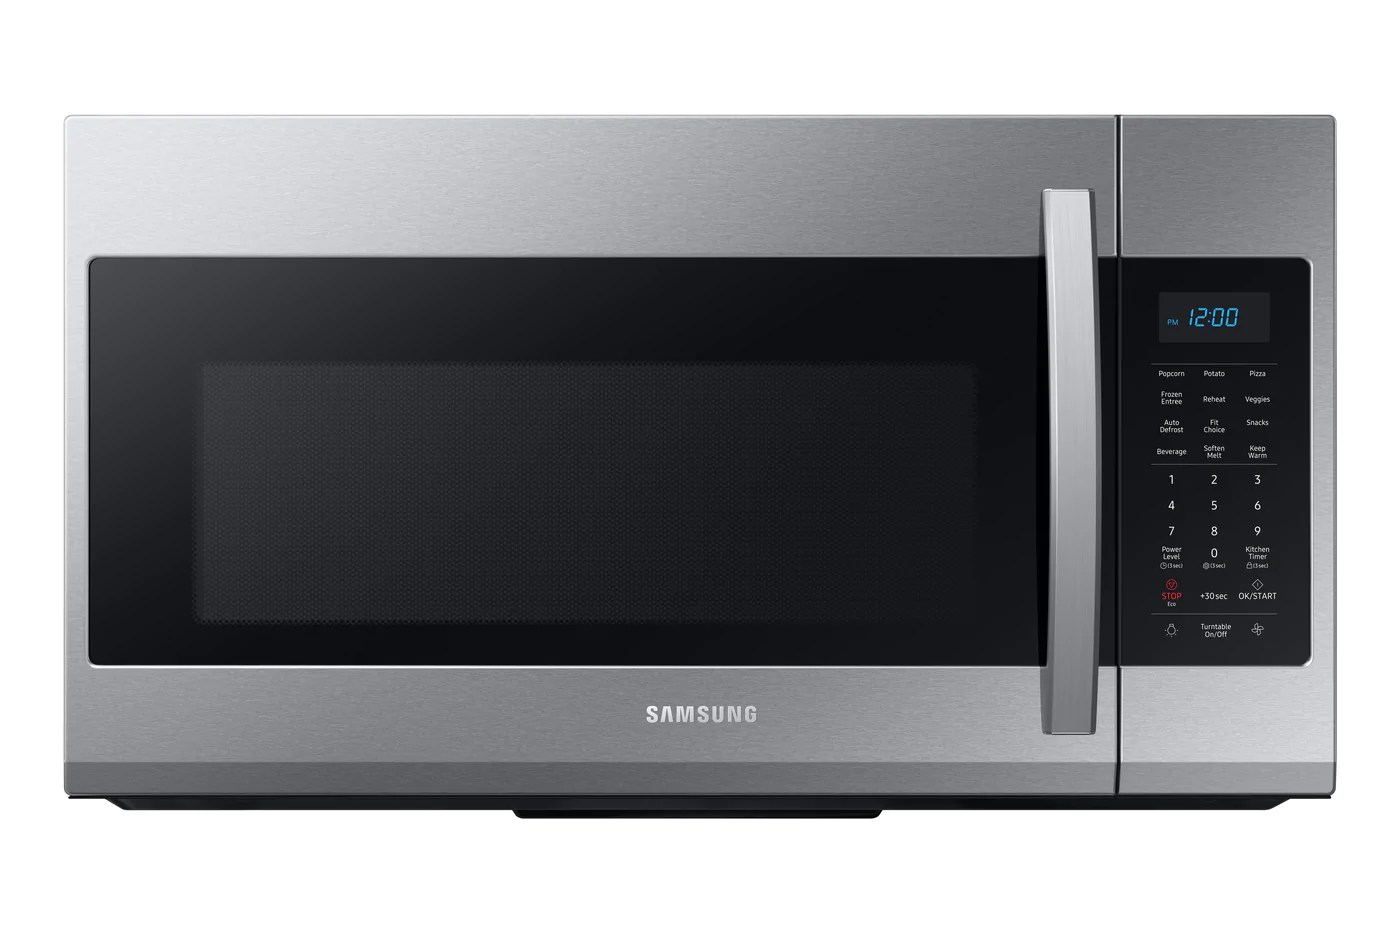 samsung stainless steel over the range microwave 1 9 cu ft me19r7041fs